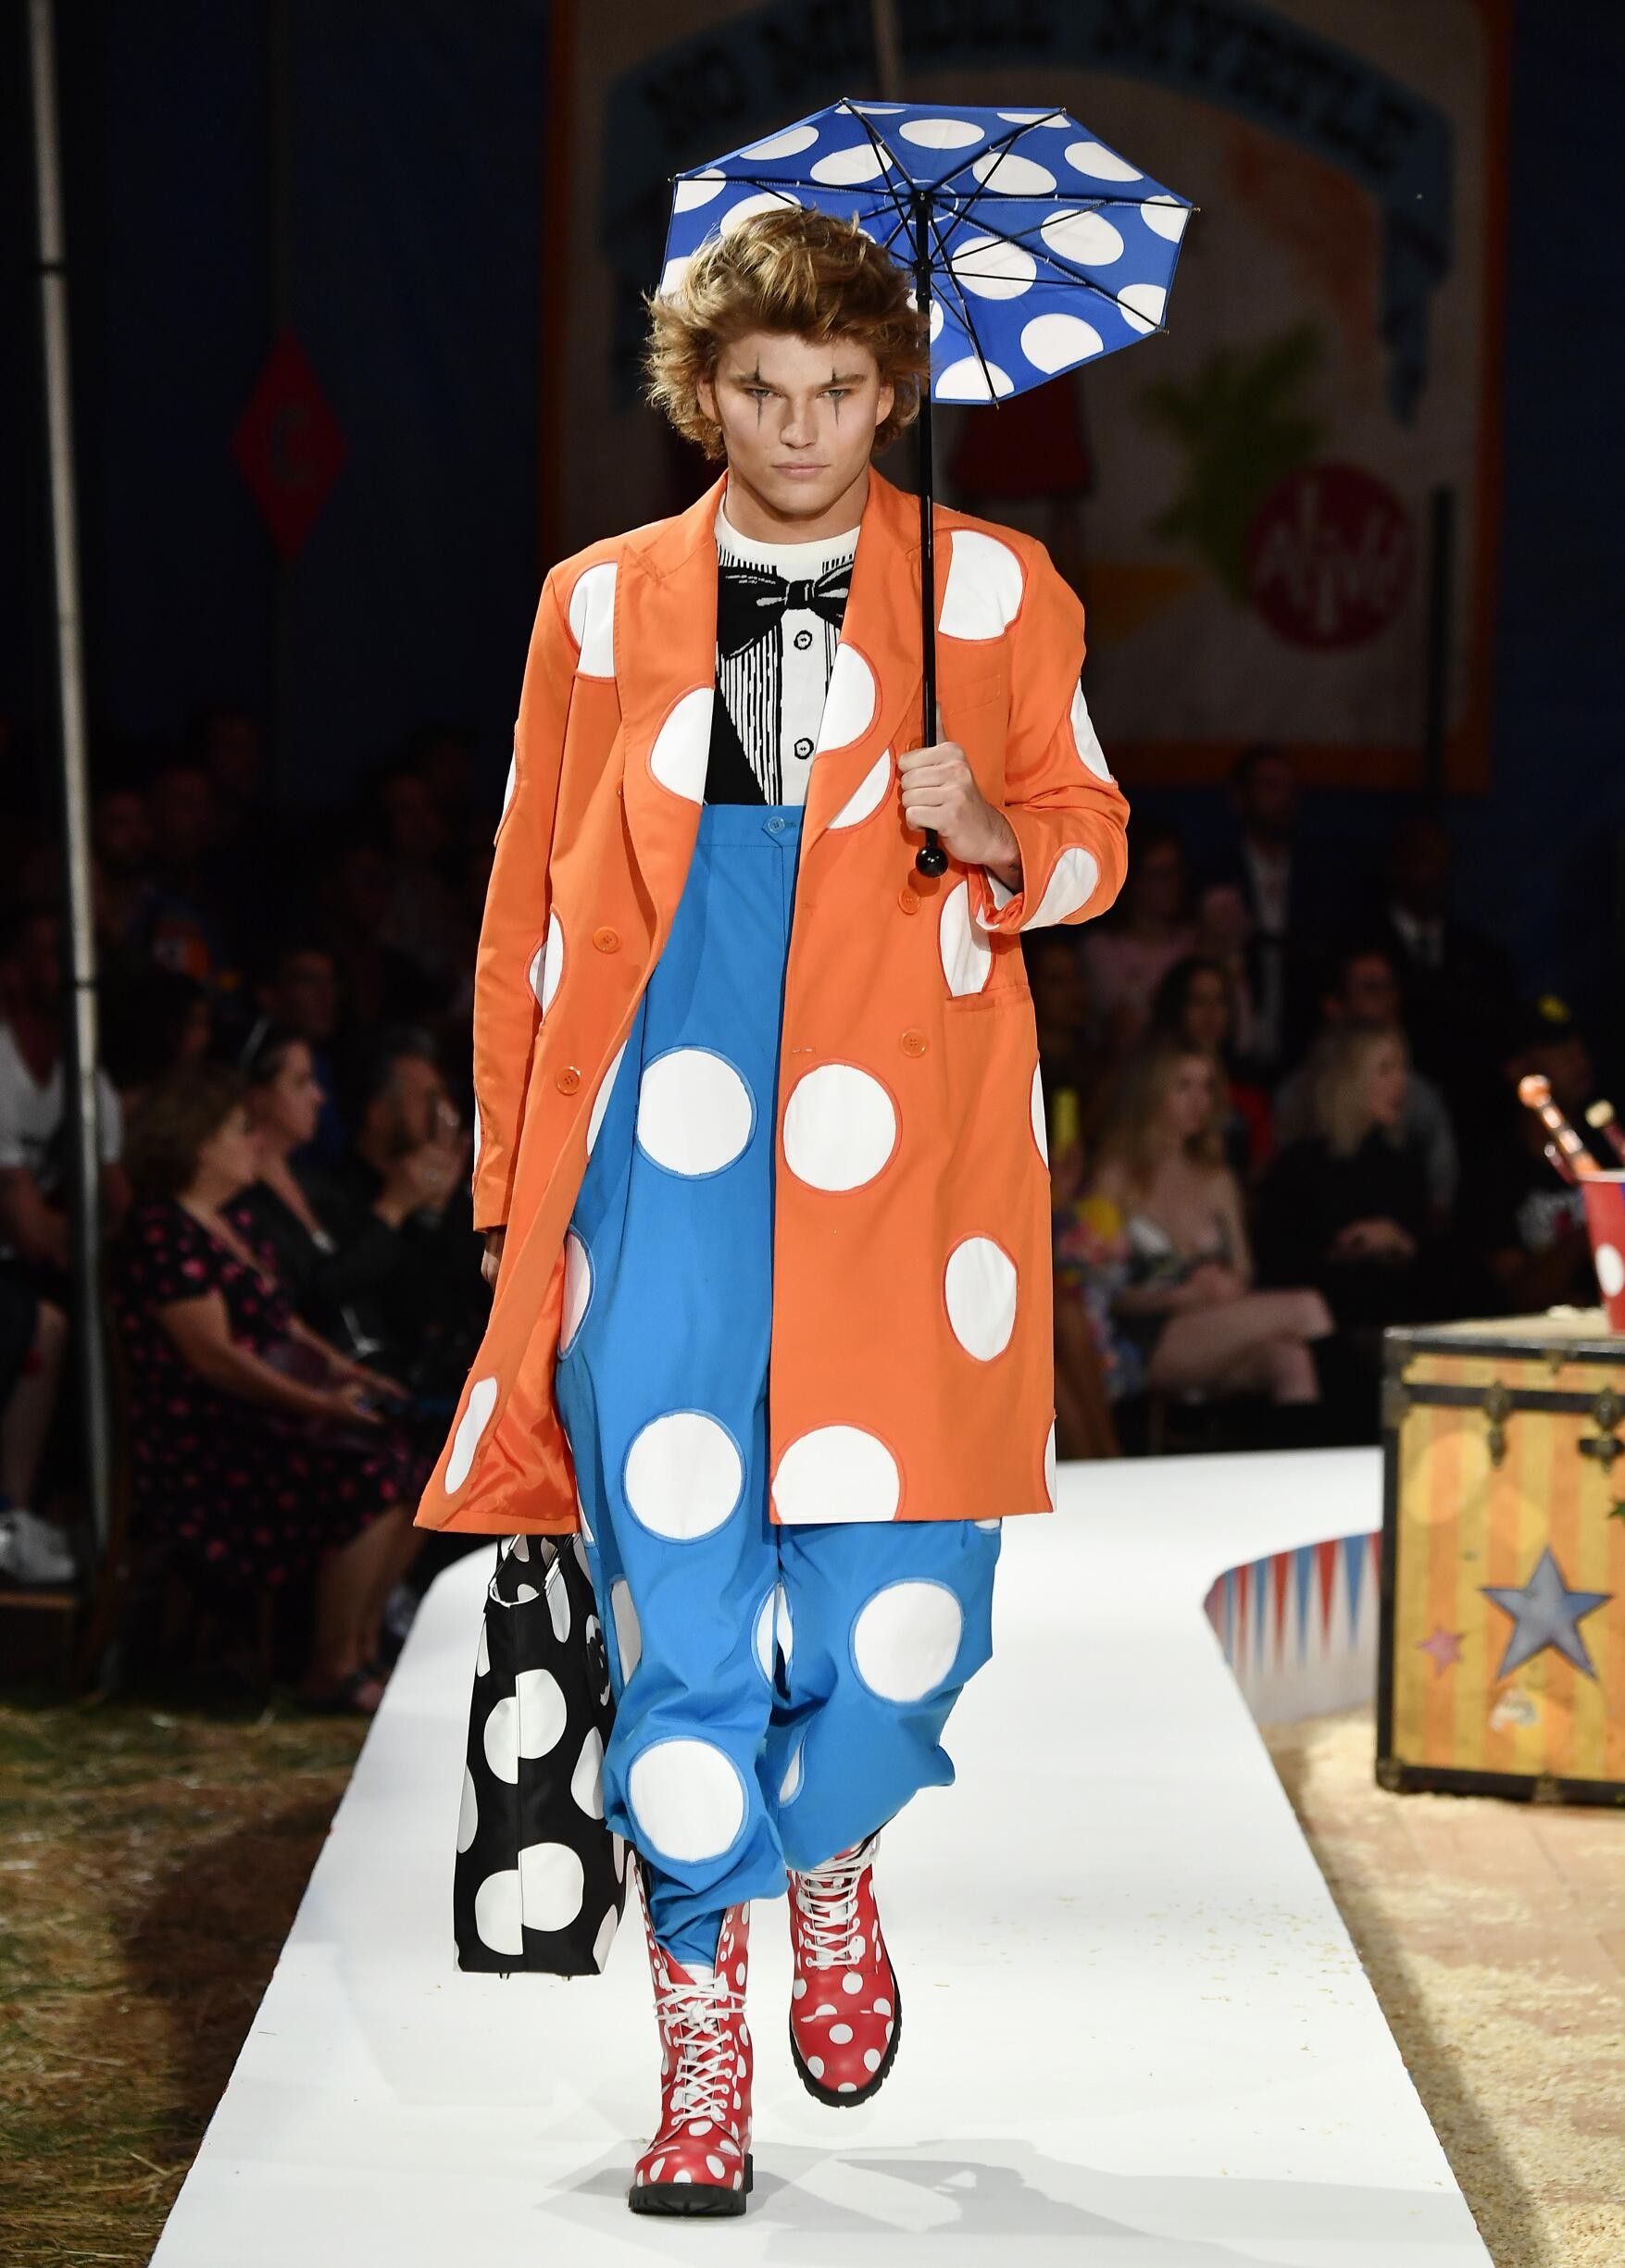 Moschino Spring Summer 2019 Menswear and Women's Resort Collection Look 26 Los Angeles